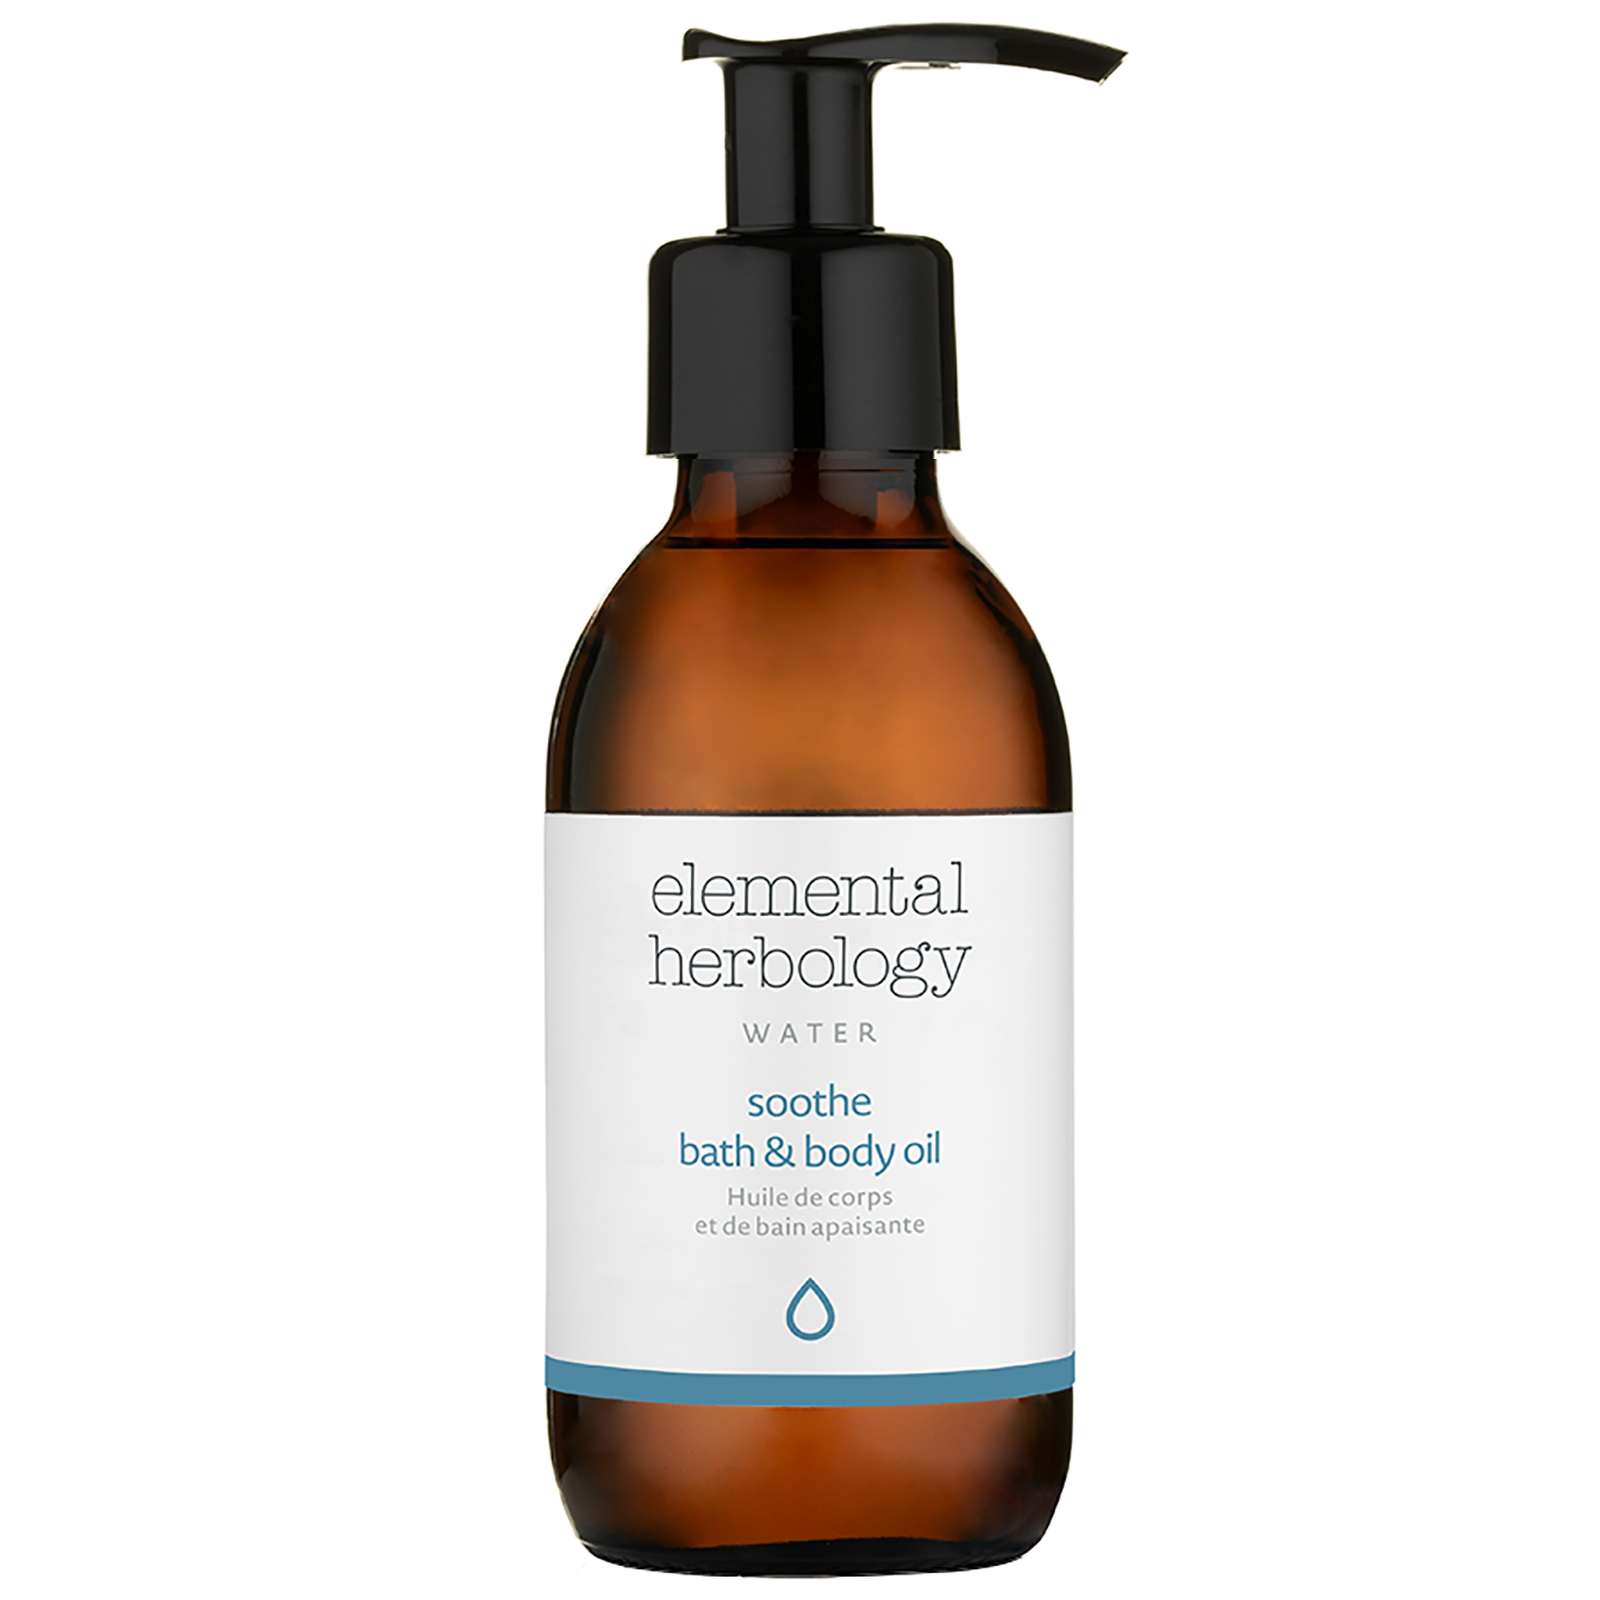 Elemental Herbology Five Element Bath & Body Oils  Water Soothe 145ml